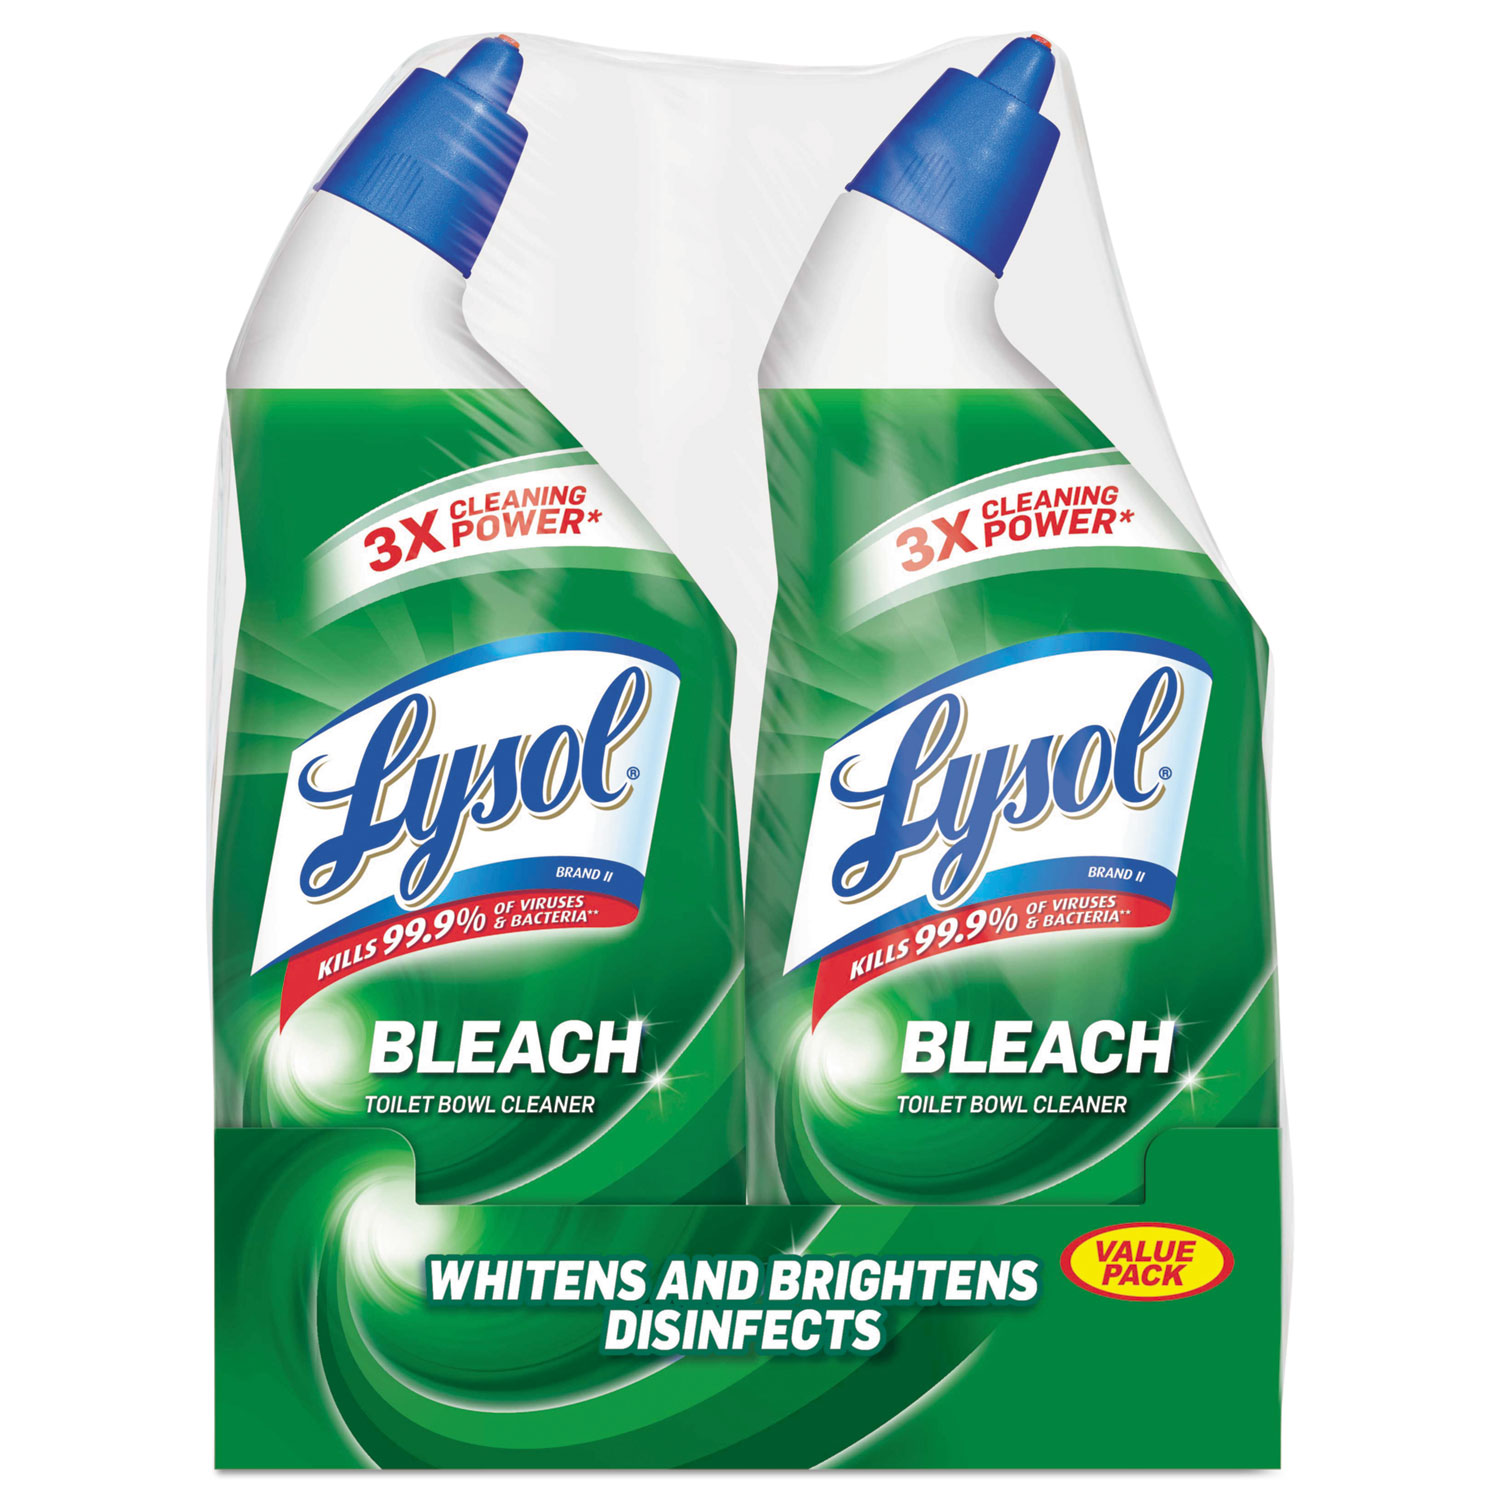 Disinfectant Bathroom Cleaner With Bleach By Lysol 174 Brand